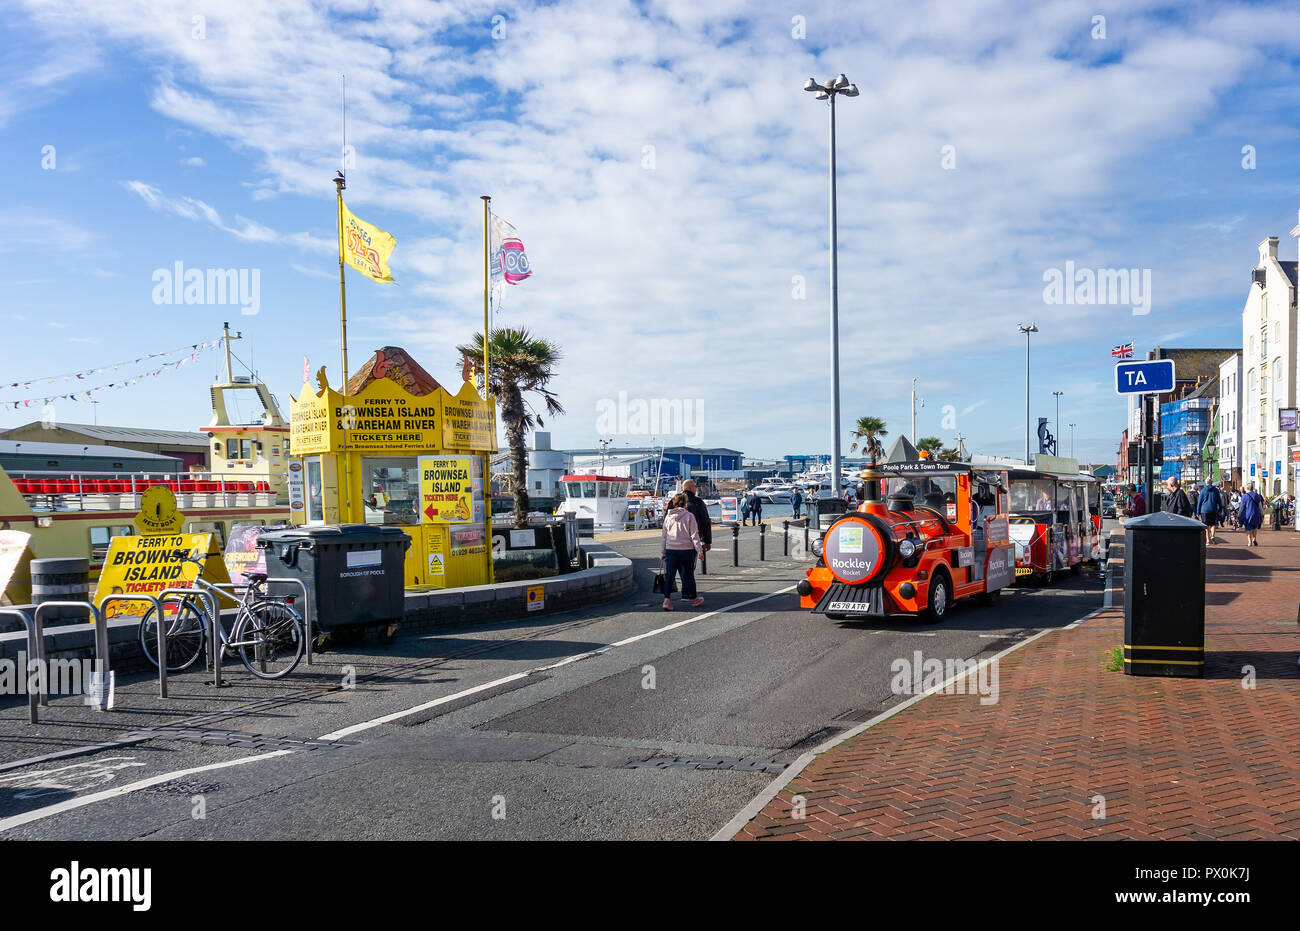 Poole tourist train in Poole Harbour, Dorset, UK on 18 October 2018 - Stock Image